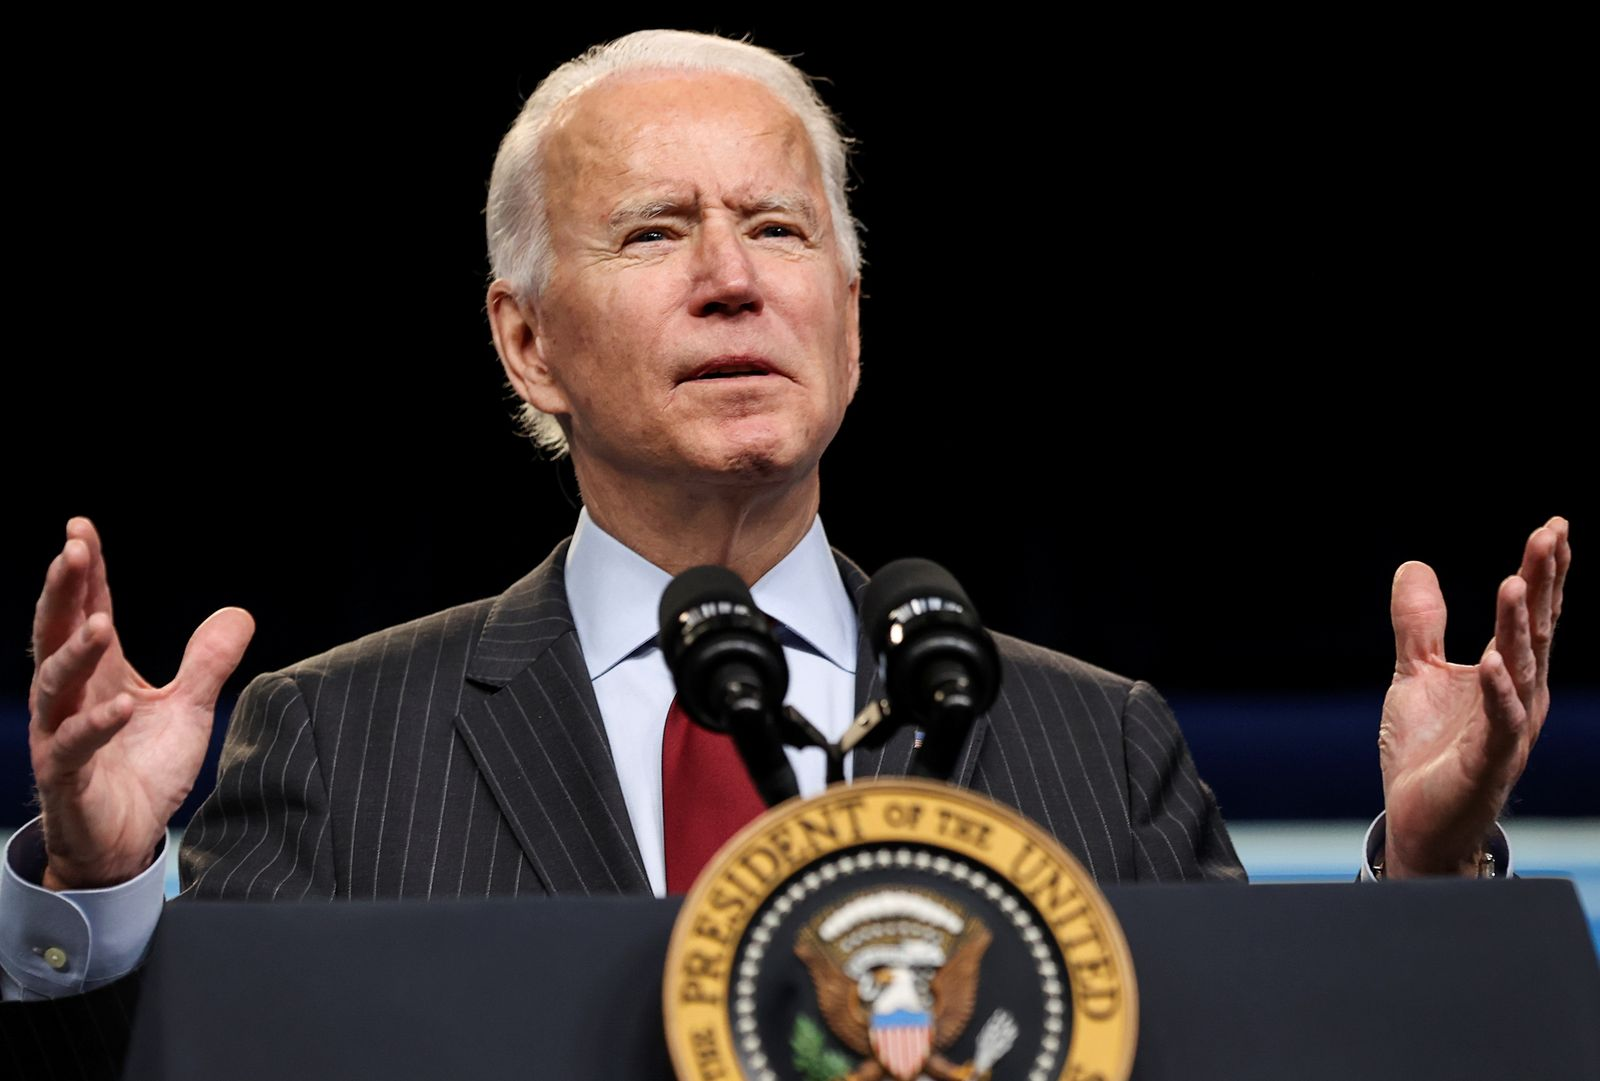 U.S. President Biden makes an announcement on coronavirus aid for small businesses at the White House in Washington